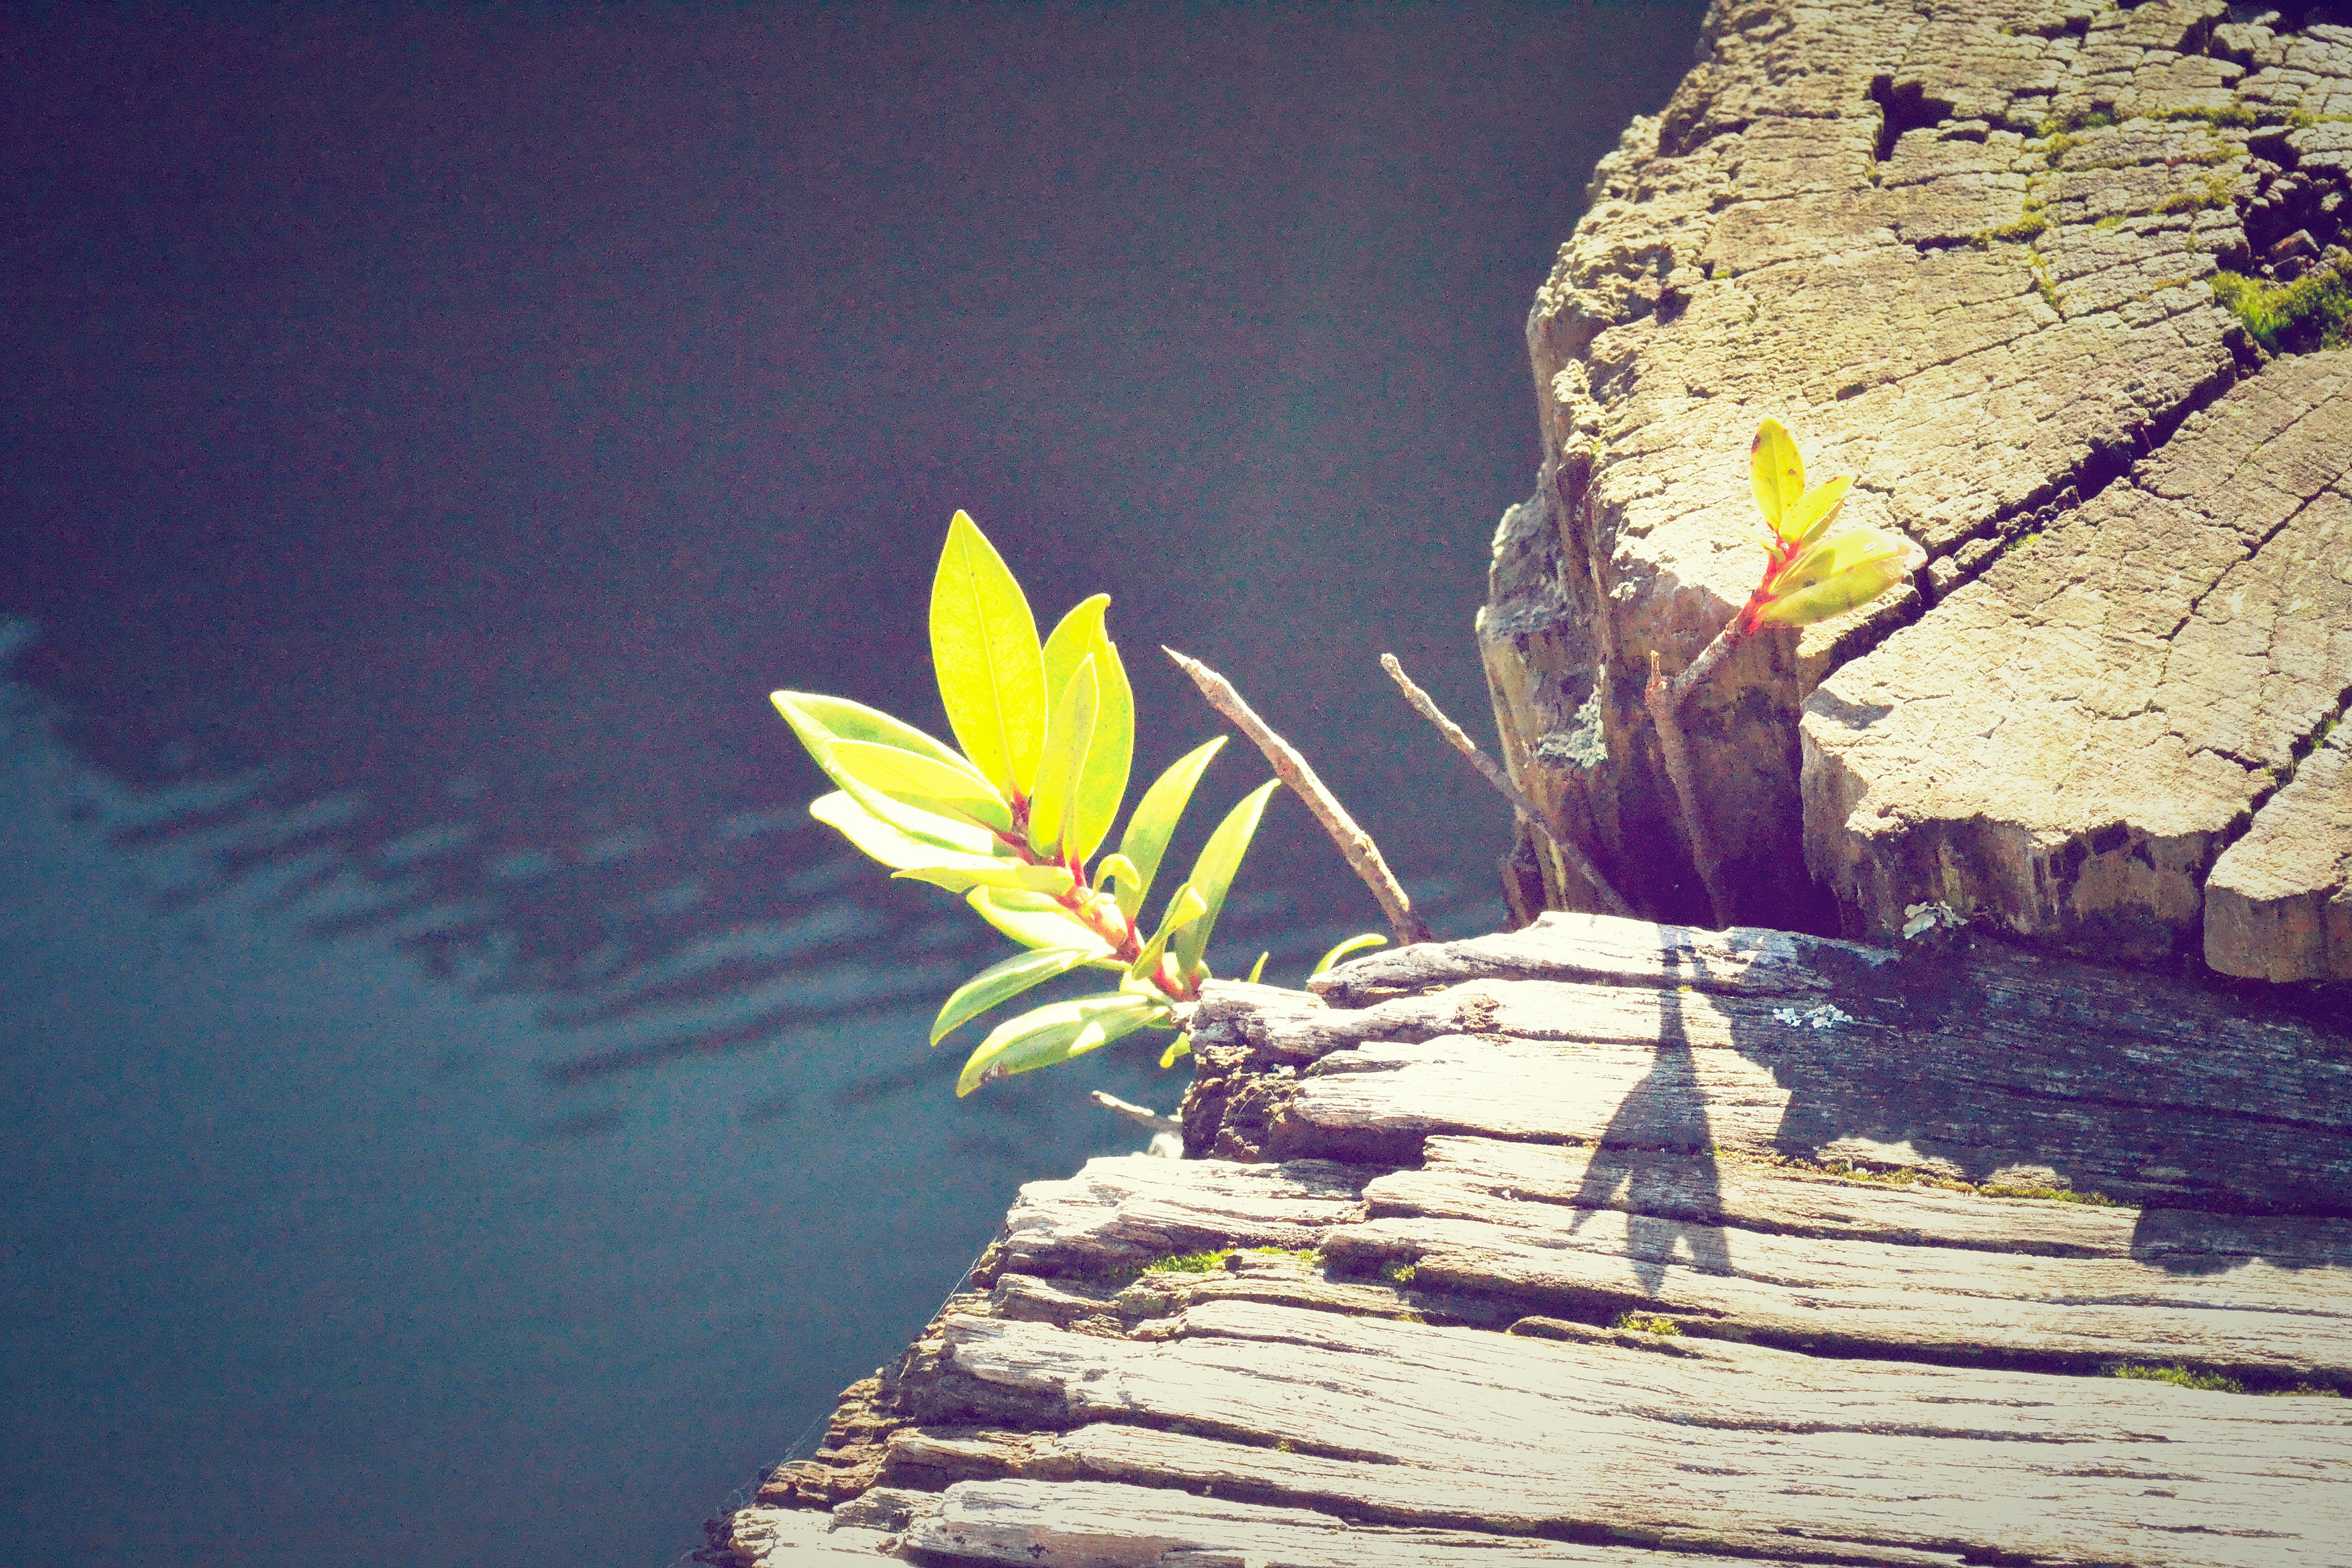 Green leafy plant growing near rock by water in Spring